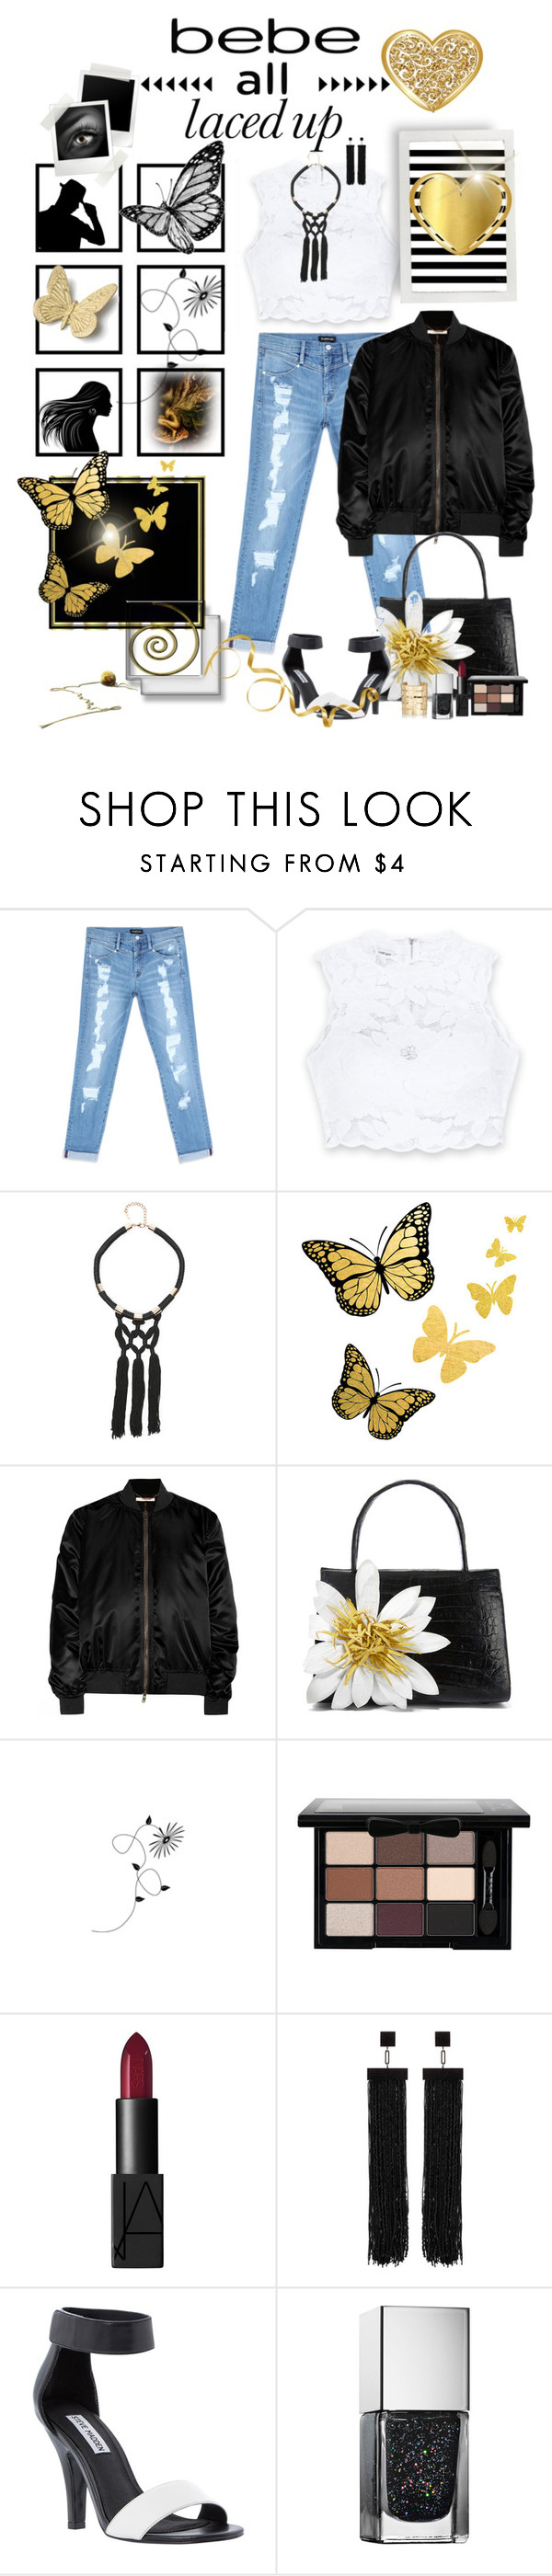 """All Laced Up for Spring with bebe: Contest Entry"" by ntina36 ❤ liked on Polyvore featuring Bebe, Givenchy, Nancy Gonzalez, NYX, NARS Cosmetics, Tom Ford, Steve Madden, Aurélie Bidermann and alllacedup"